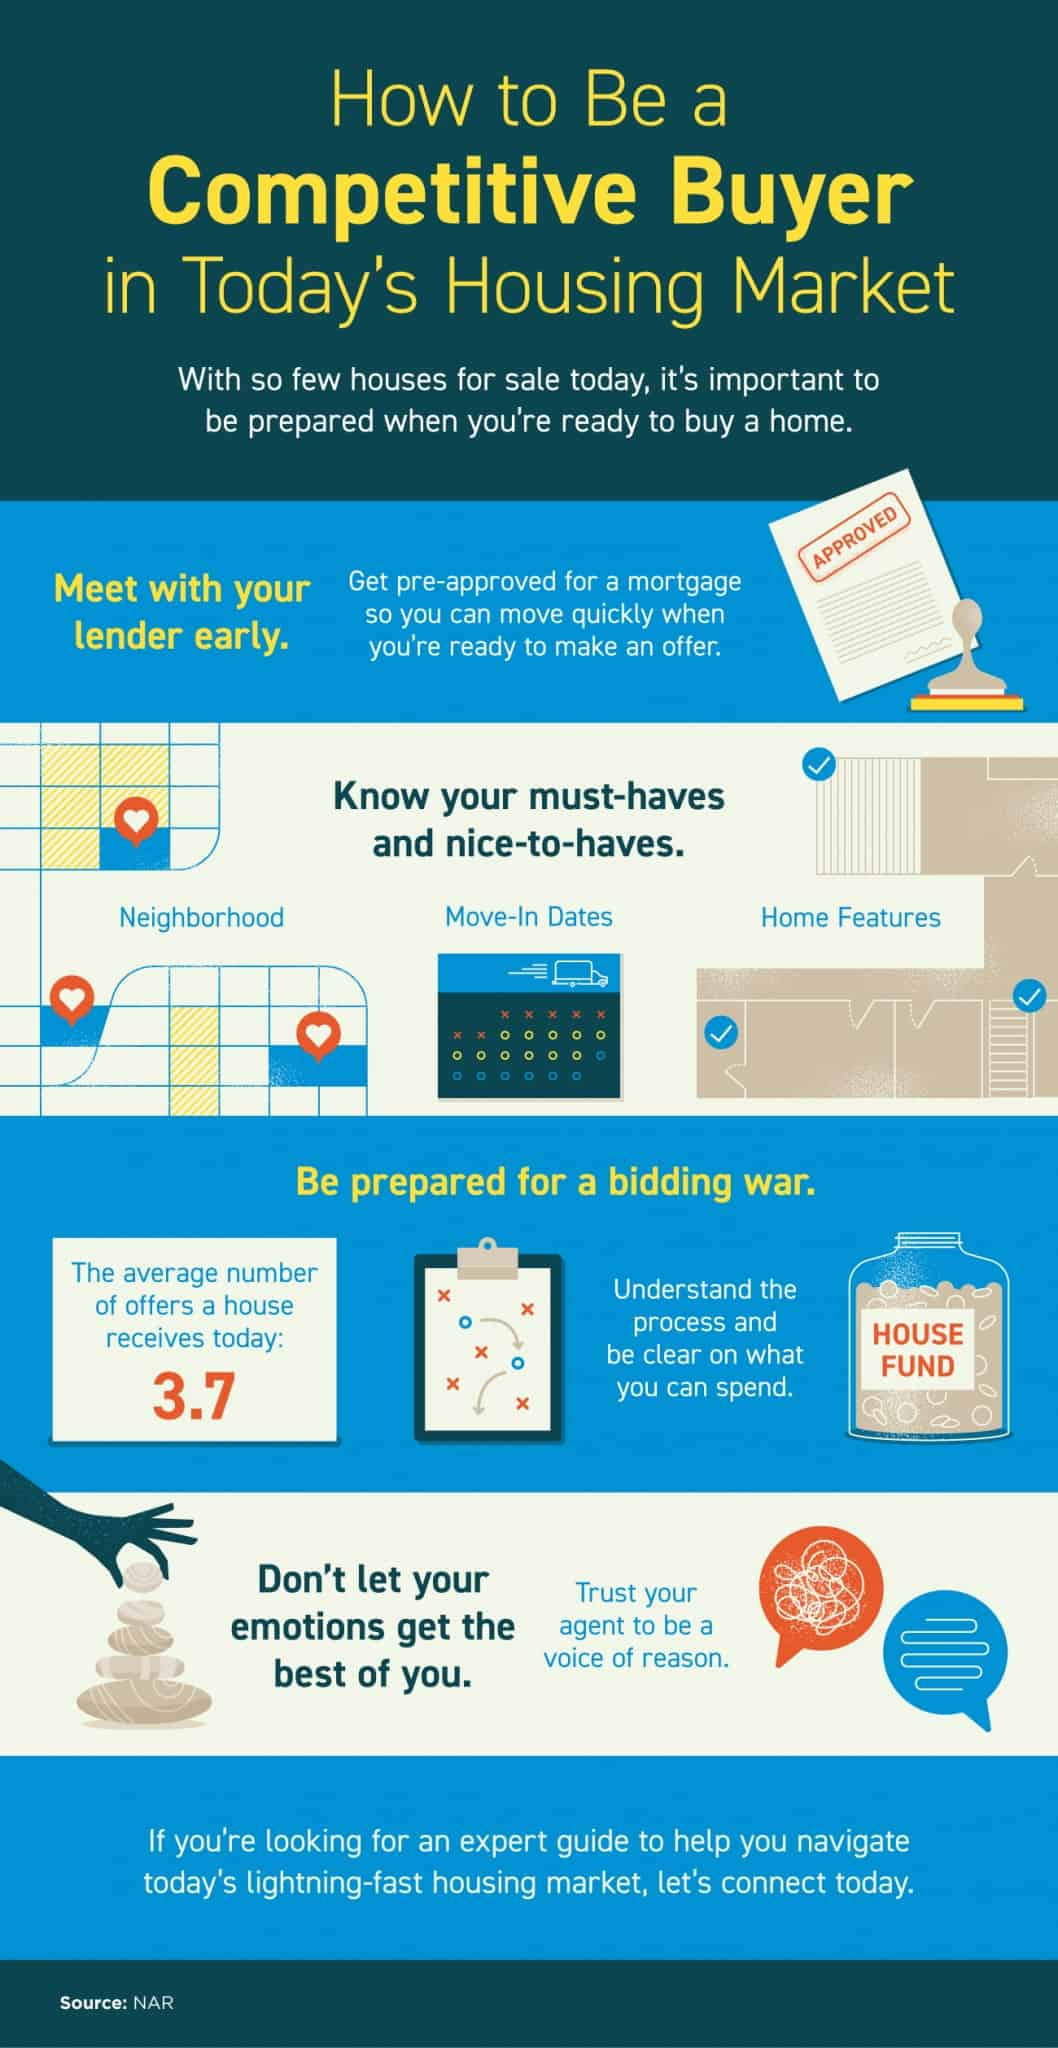 How to Be a Competitive Buyer in Today's Housing Market [INFOGRAPHIC]